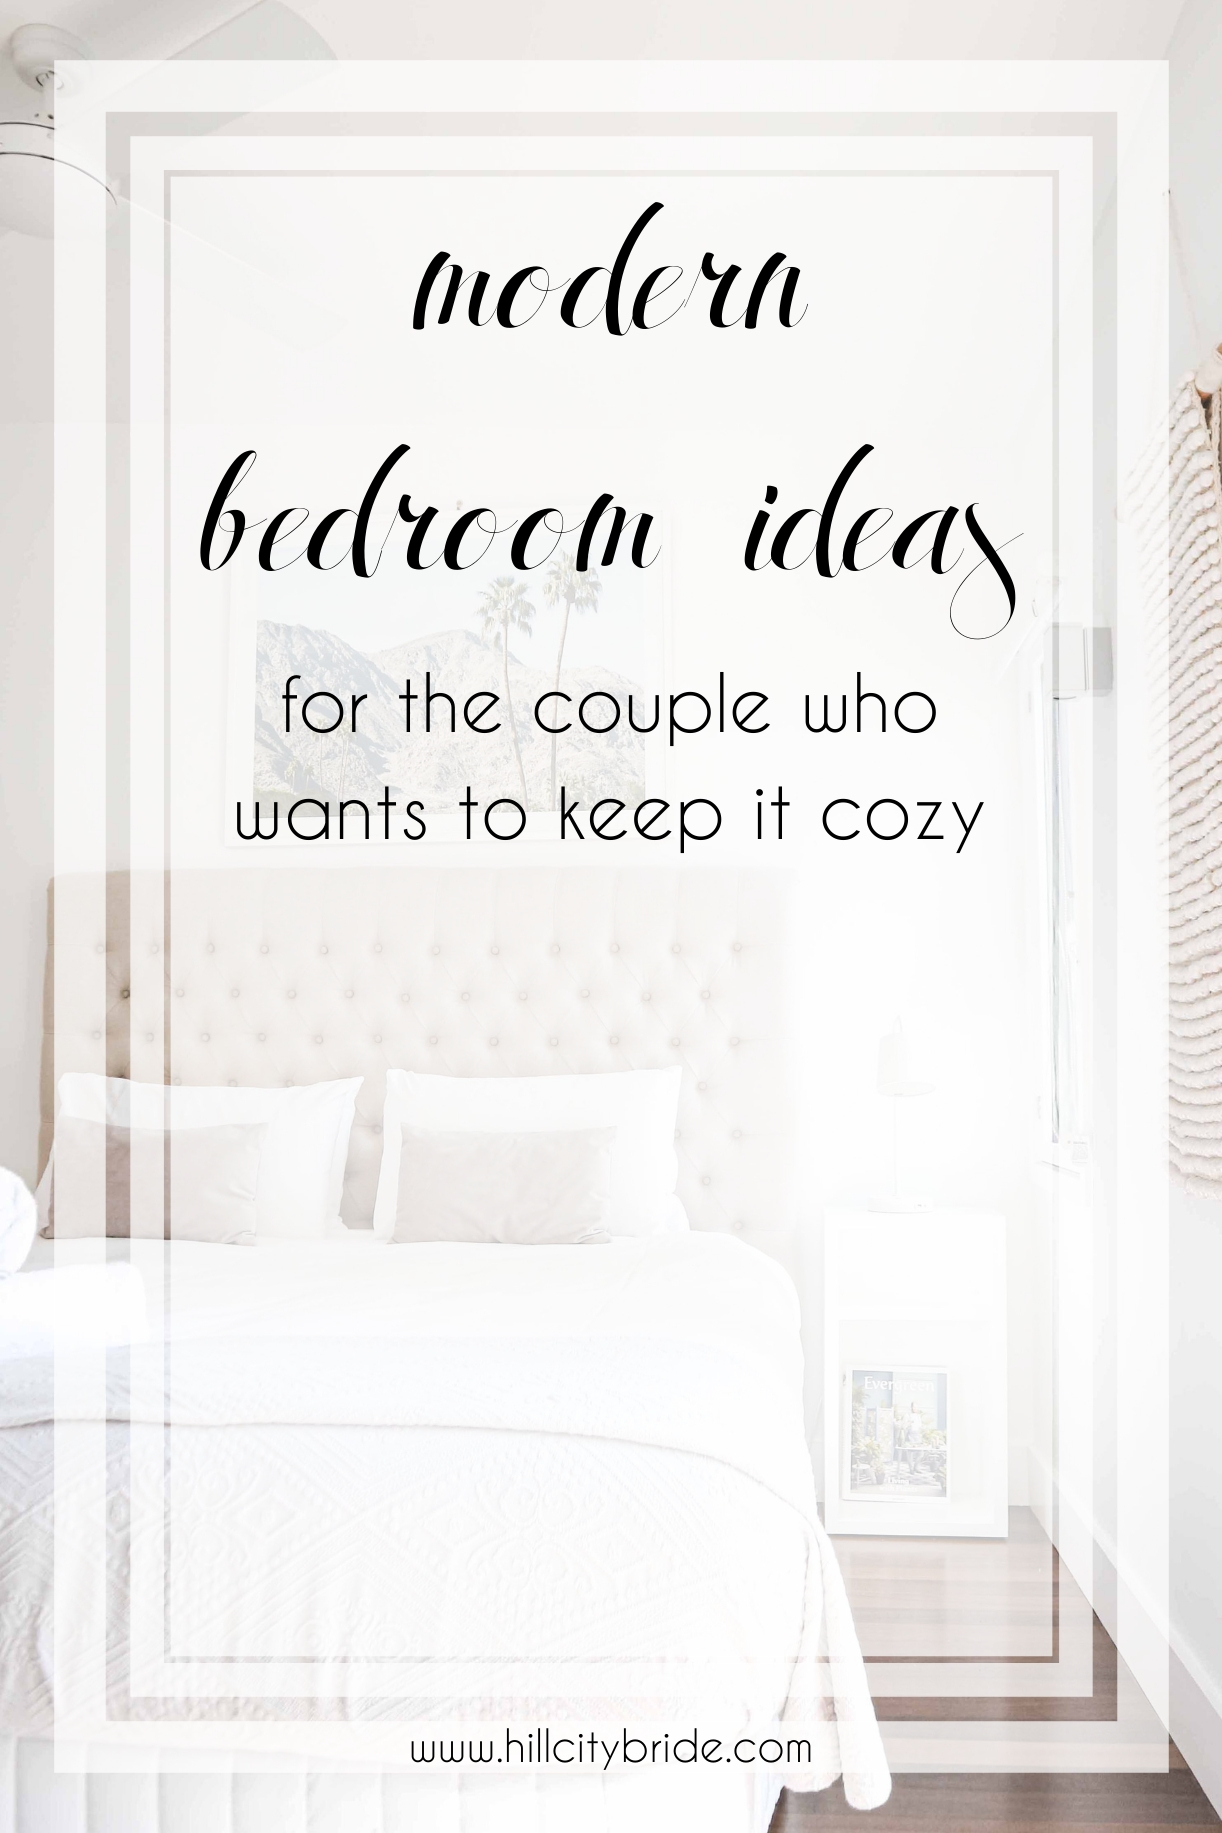 Modern Bedroom Ideas For The Couple Who Wants To Keep It Cozy Hcb